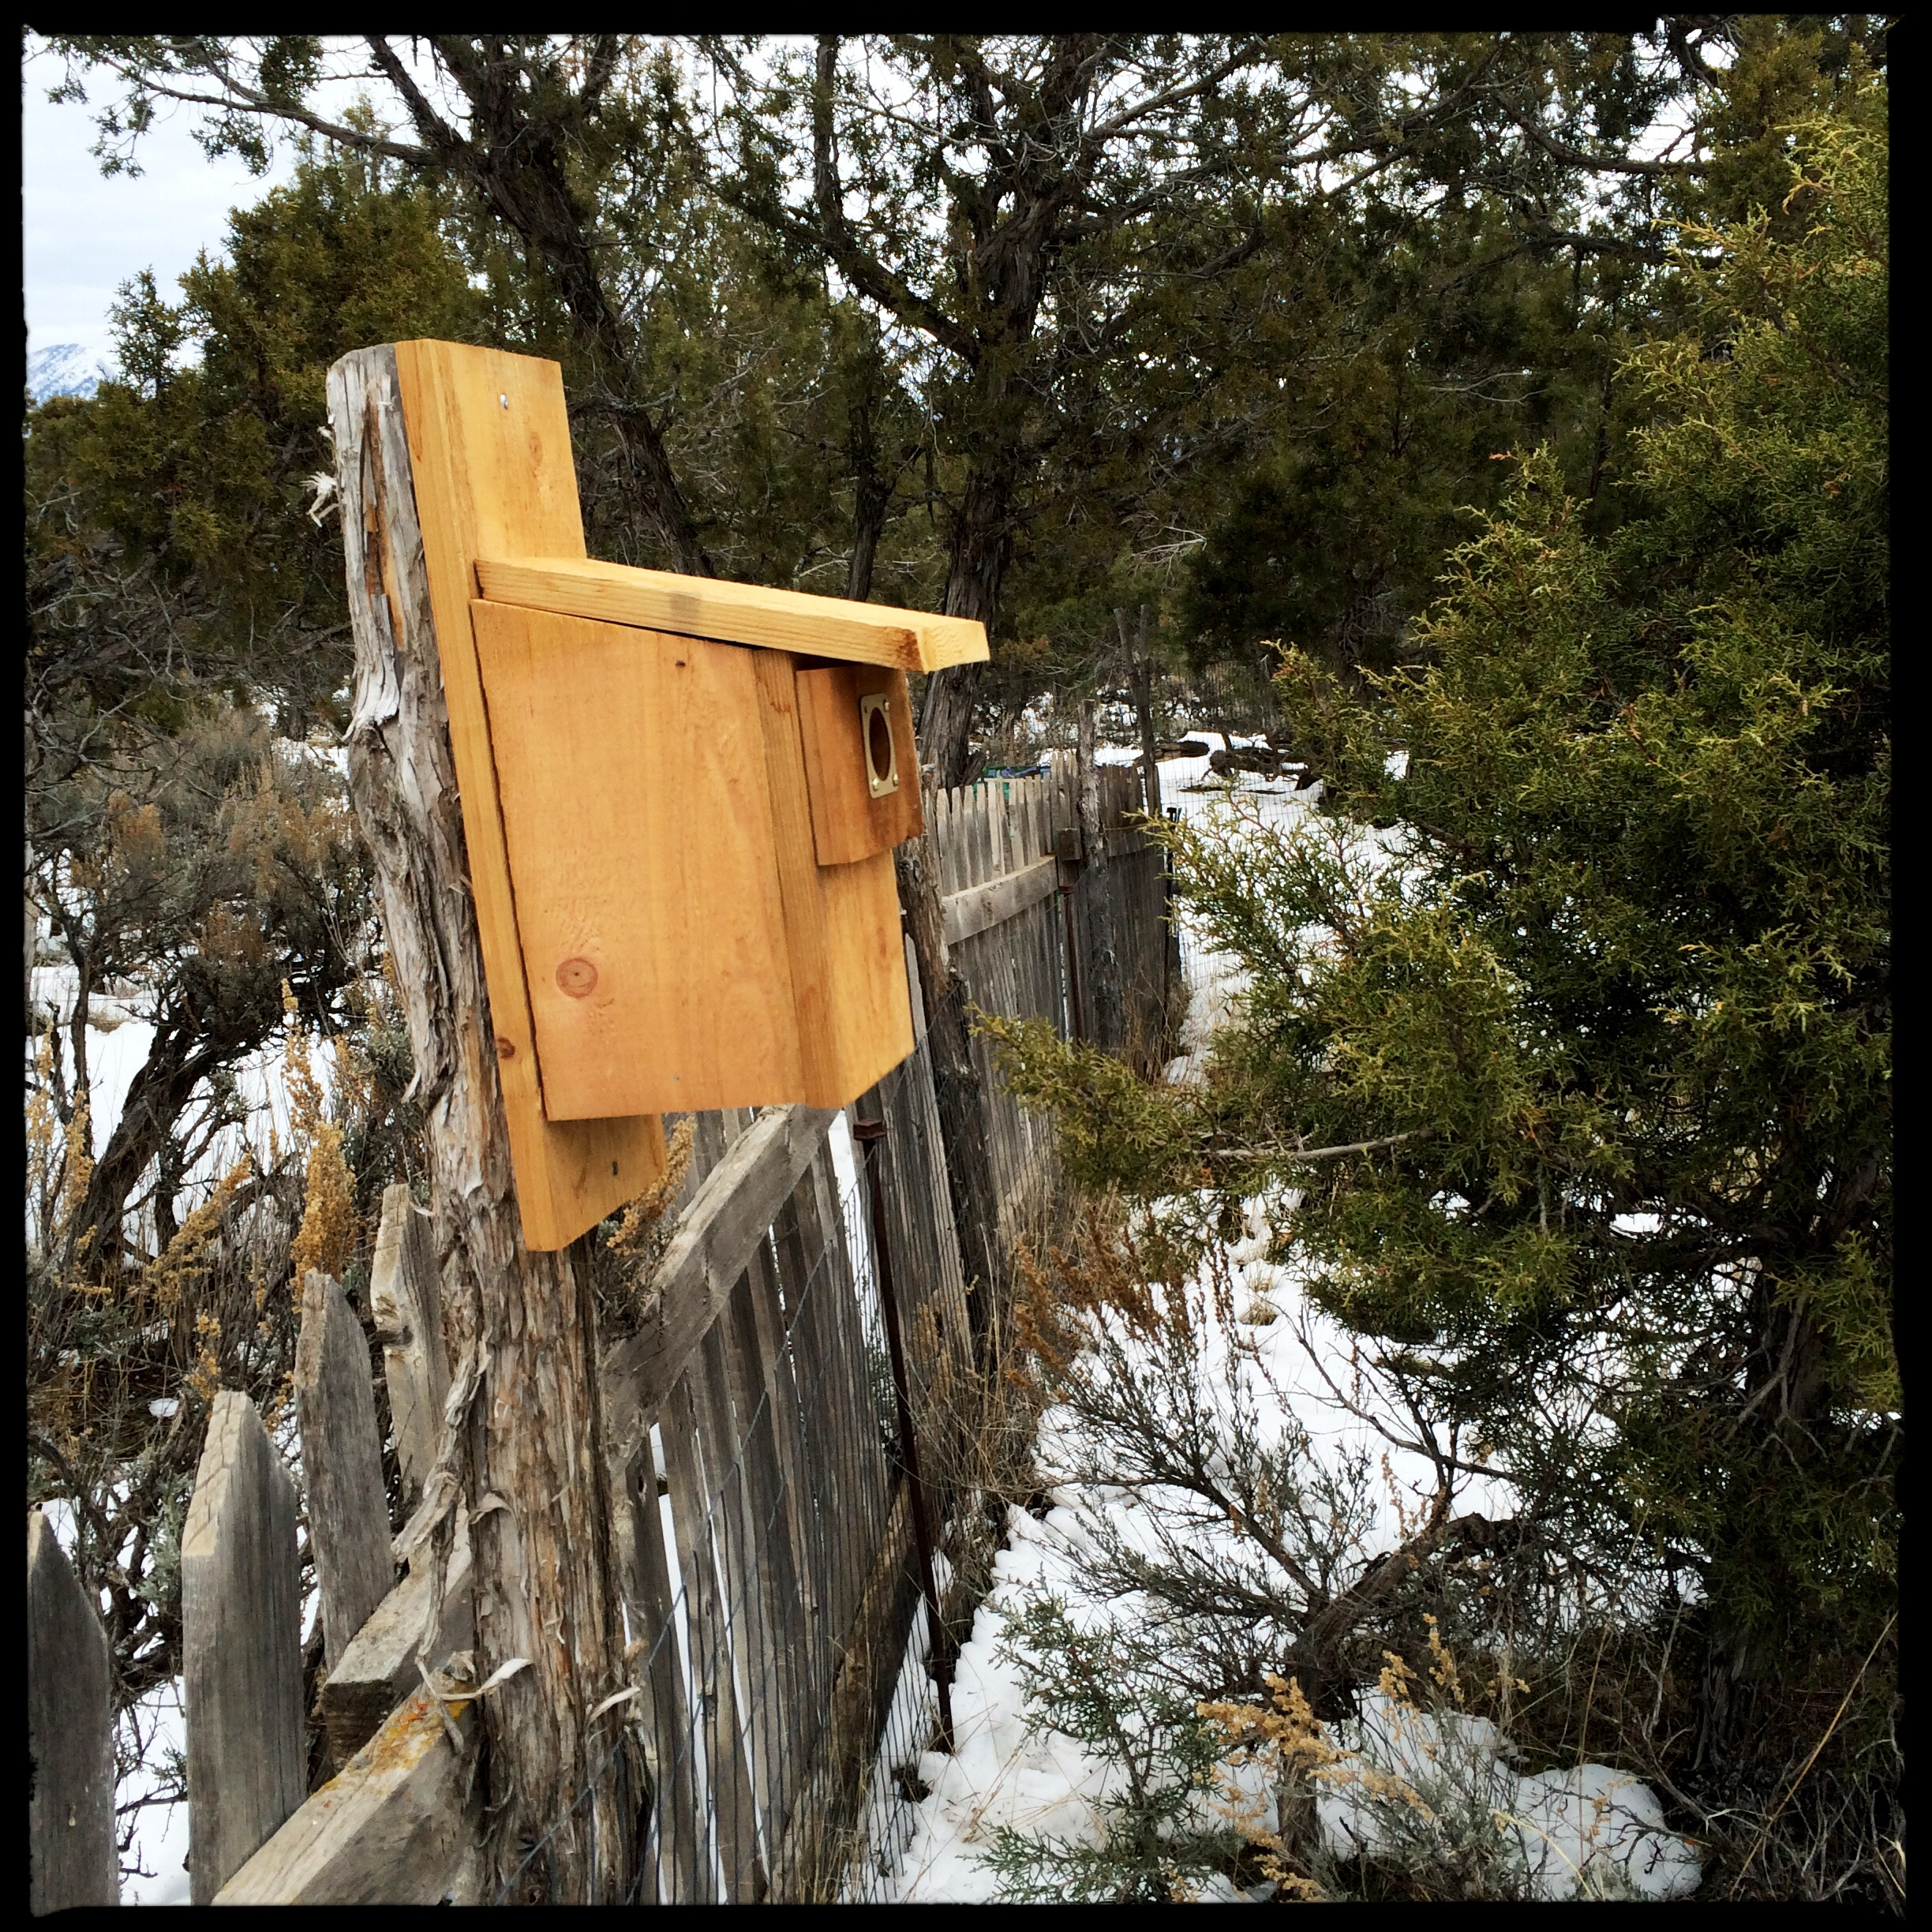 No sooner had I assembled and hung the bluebird house that Jean sent onto the south fence...